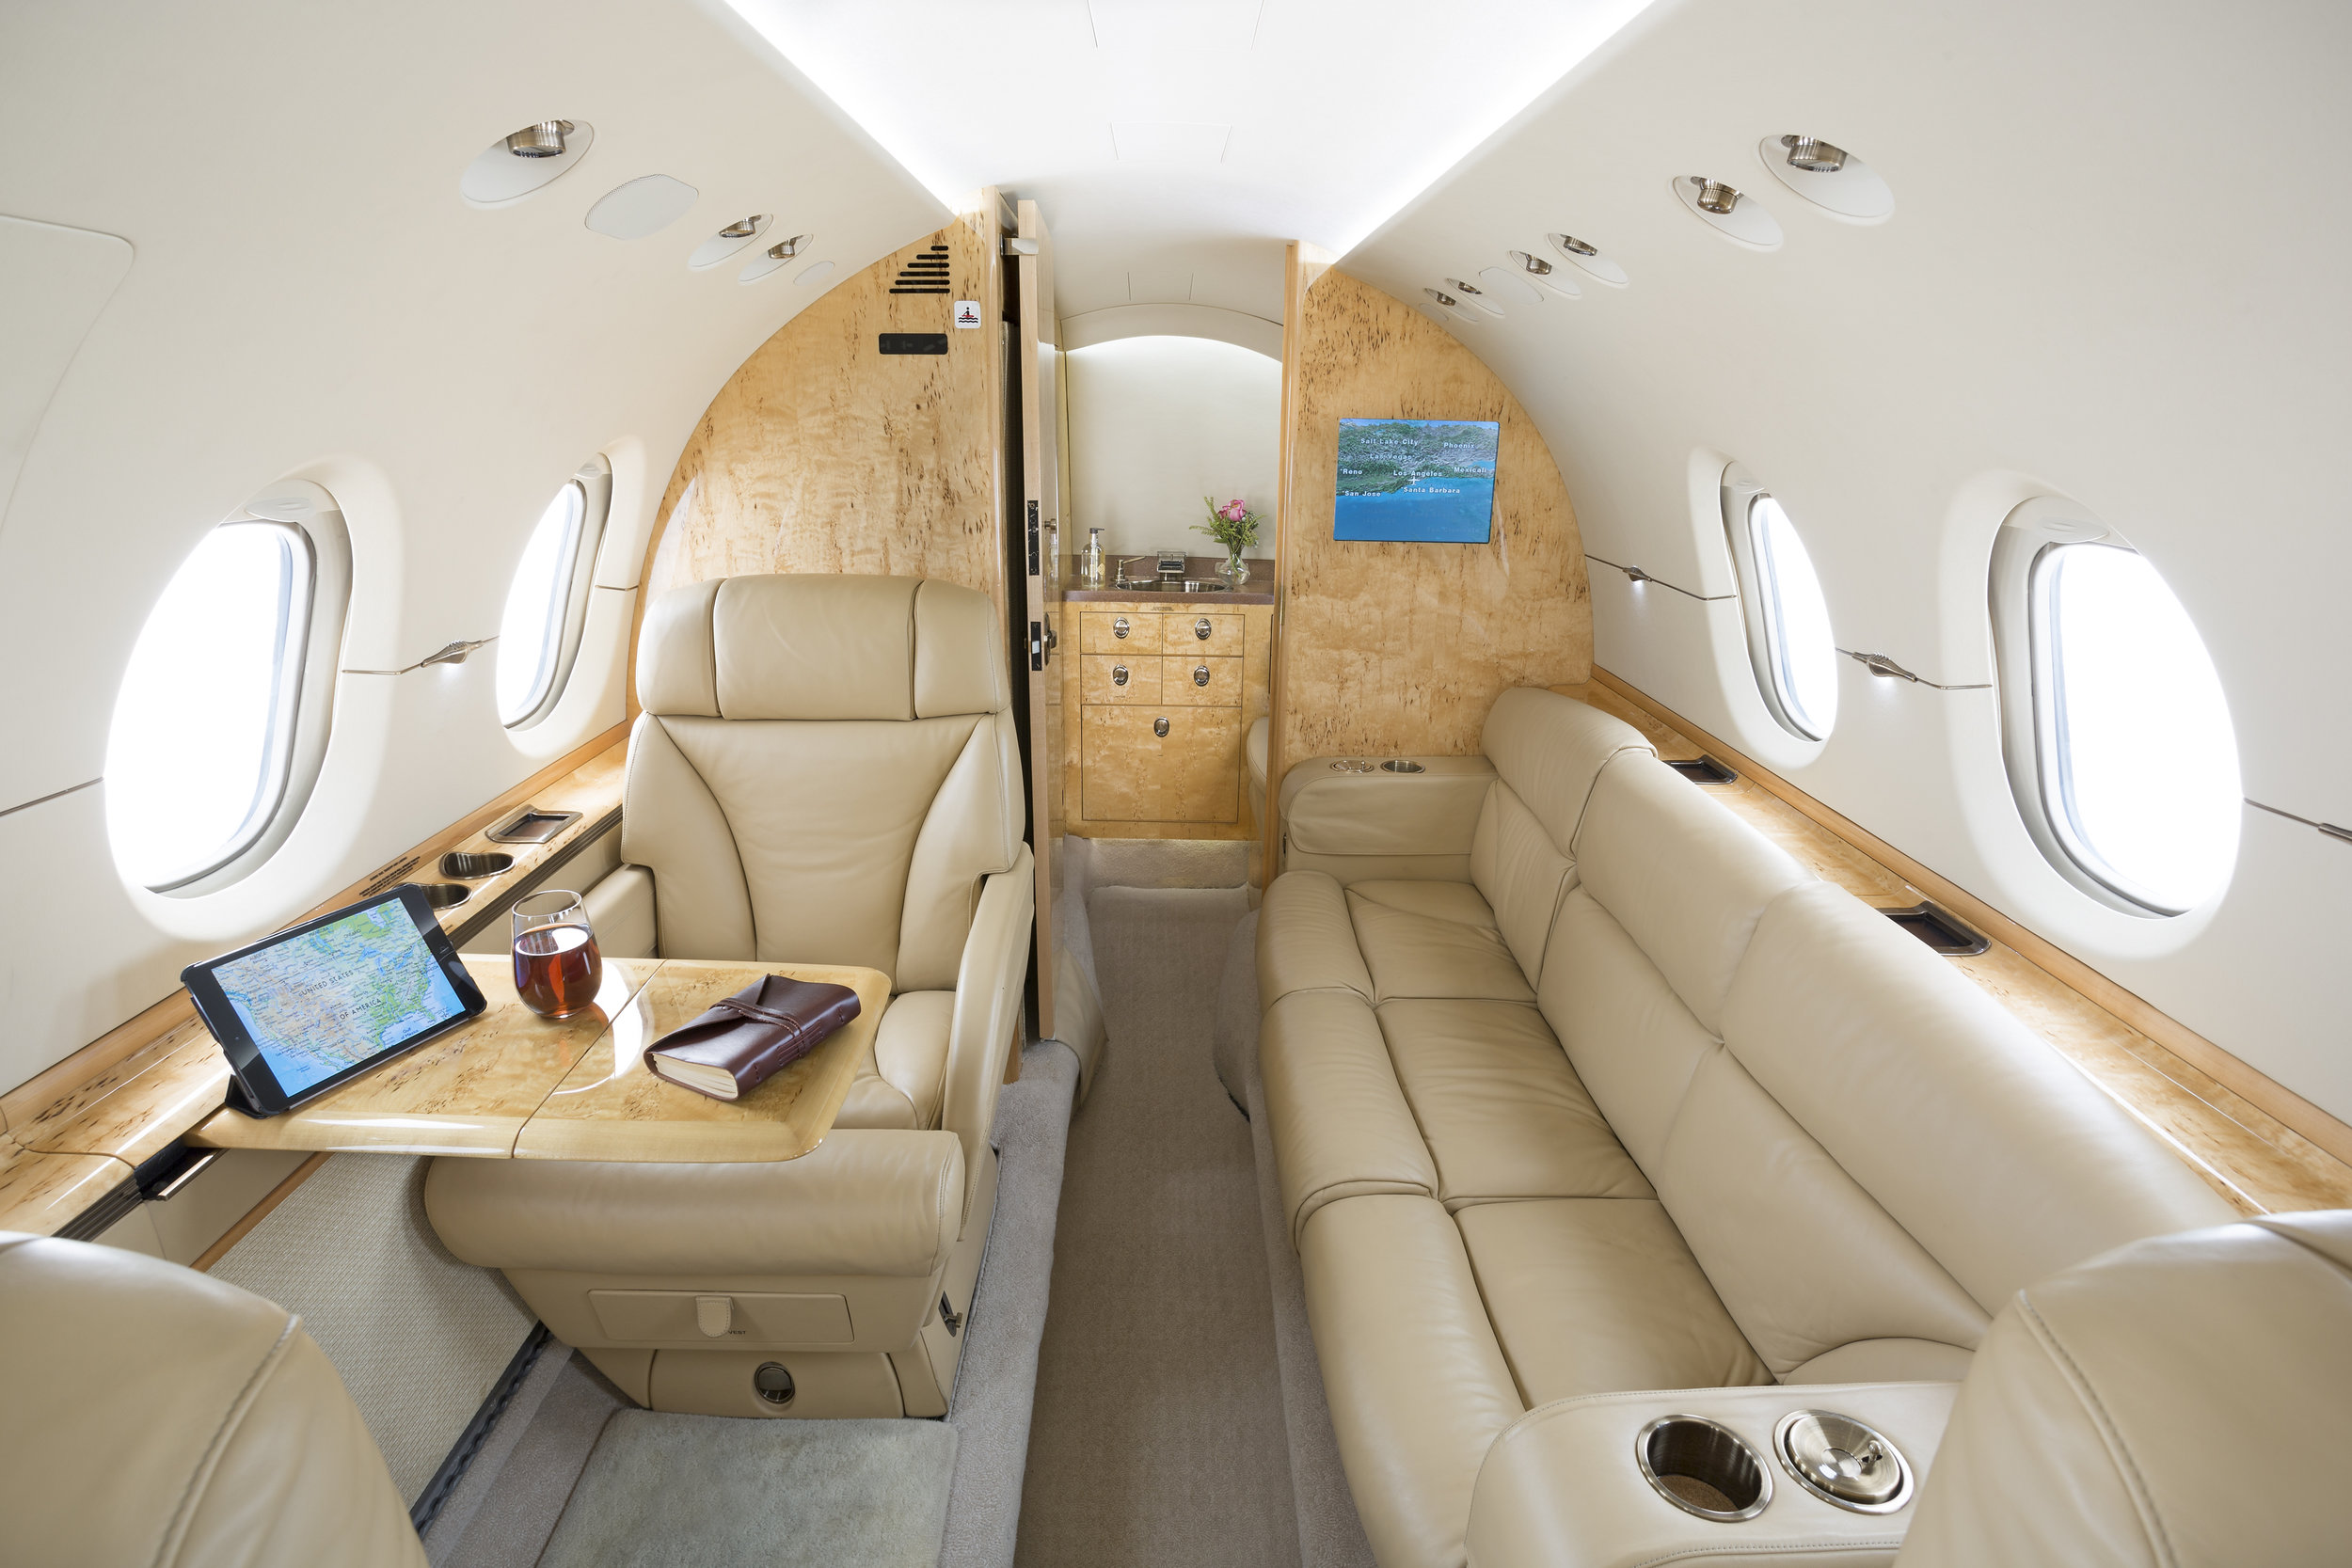 Hawker-900XP_Mid Jet_Int-3_Legacy_Aviation_Private_Jet_NetJets_Jet_Charter_TEB_VNY_MIA_PBI_FRG_SFO_FLL_FXE_BED.jpgg.jpg